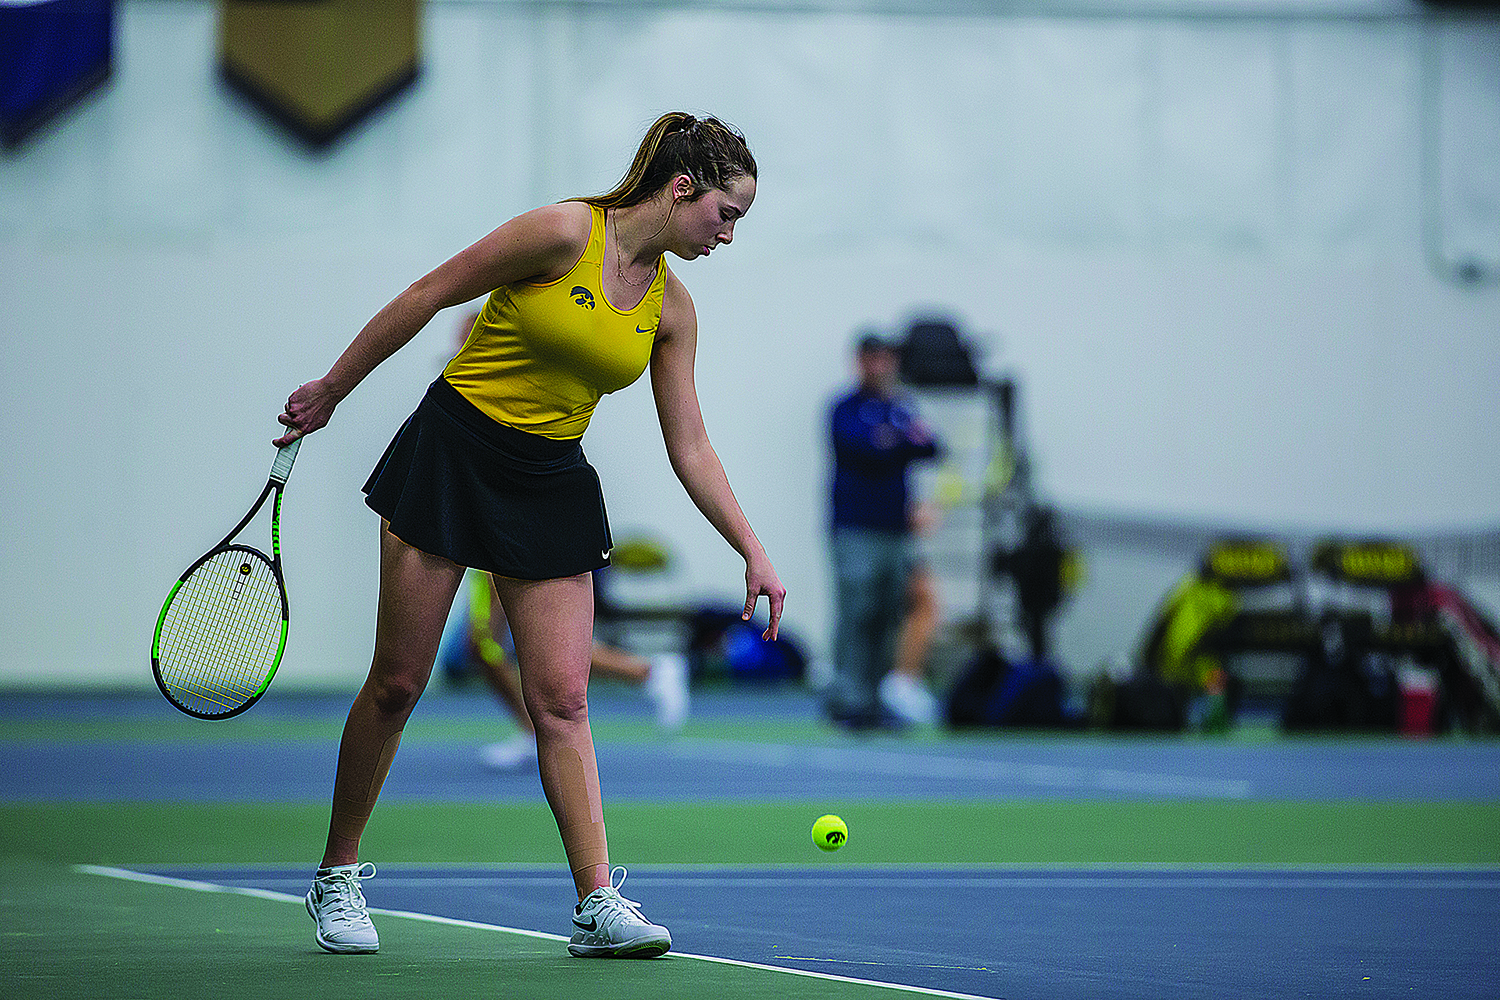 Iowa's Samantha Mannix prepares to serve during a women's tennis match between Iowa and Xavier at the Hawkeye Tennis and Recreation Center on Friday, January 18, 2019. The Hawkeyes swept the Muskateers, 7-0.